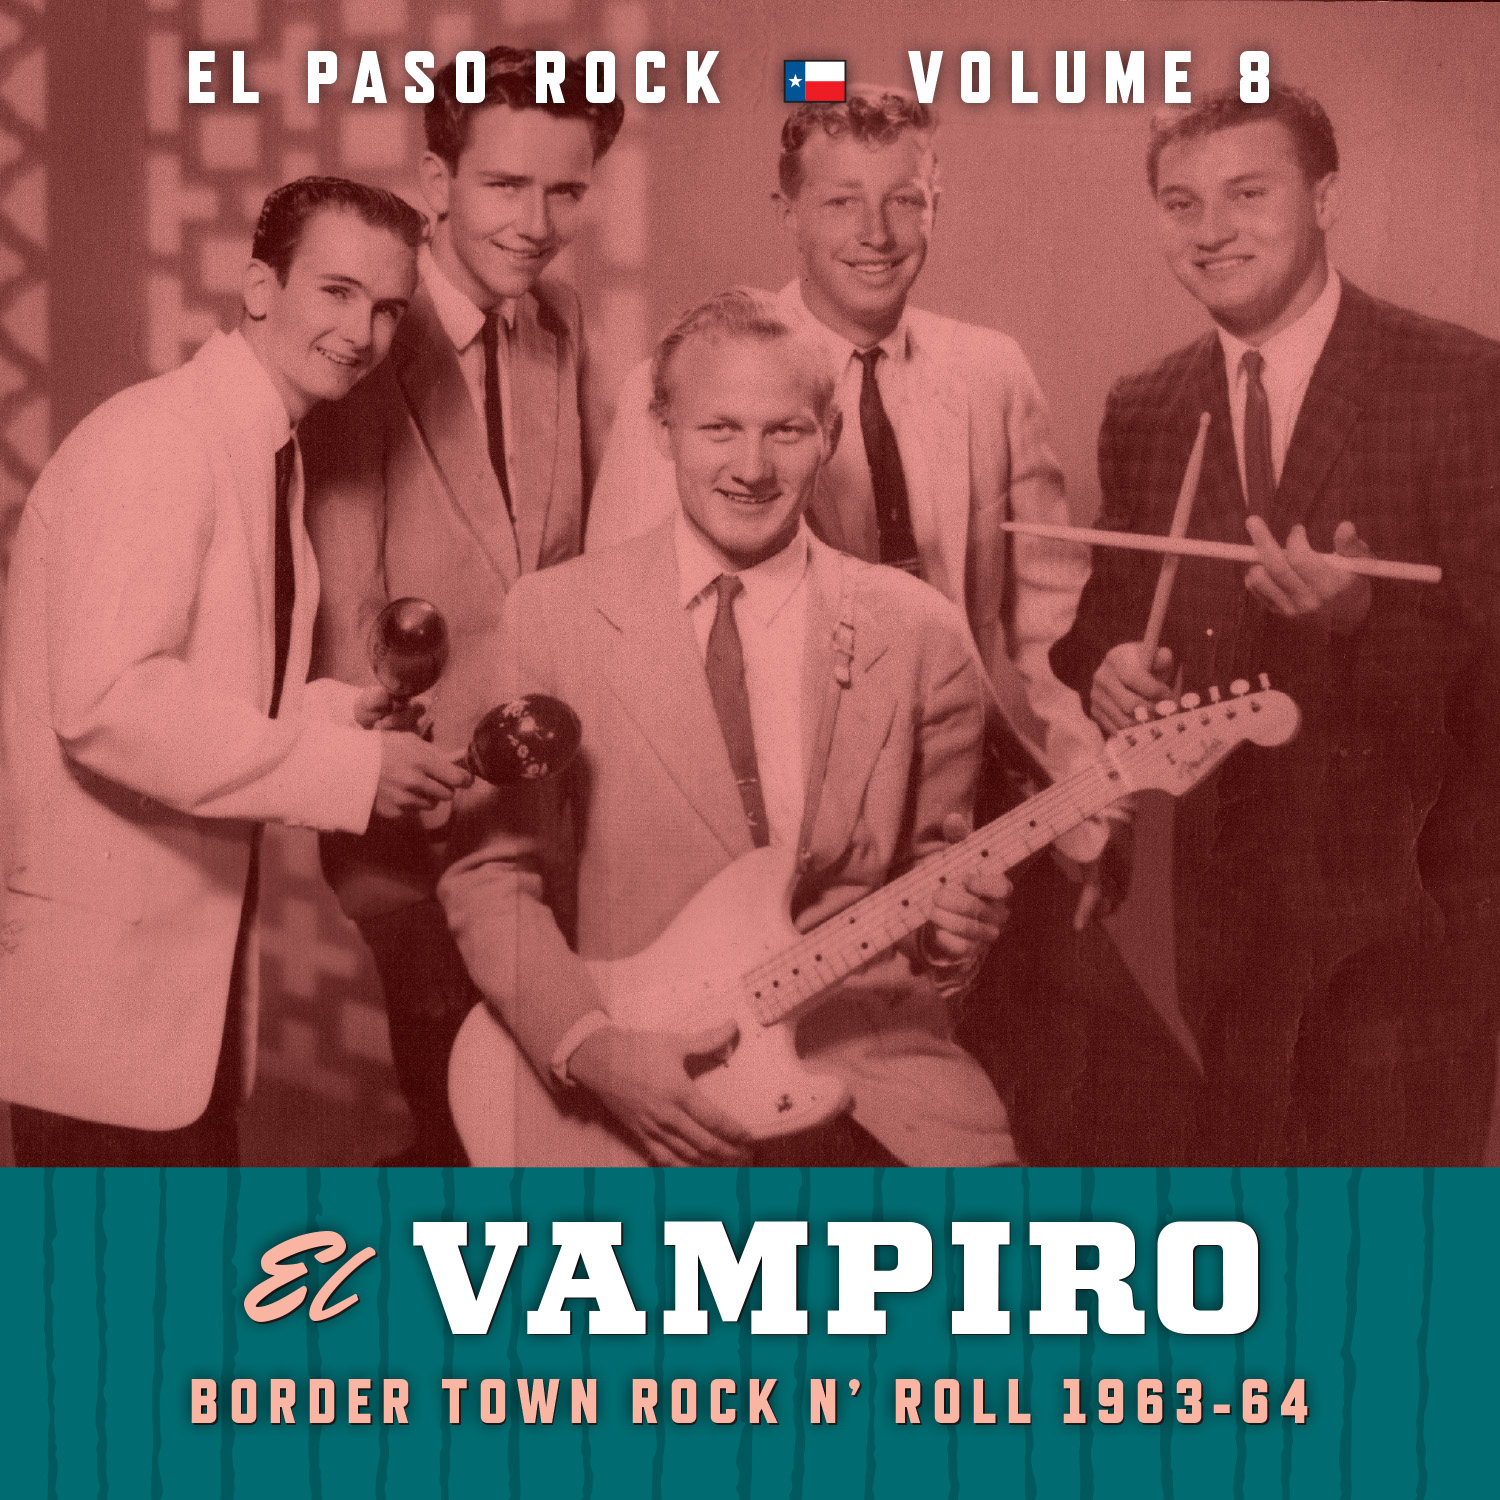 El Paso Rock Vol. 8/El Vampiro CD/LP cover